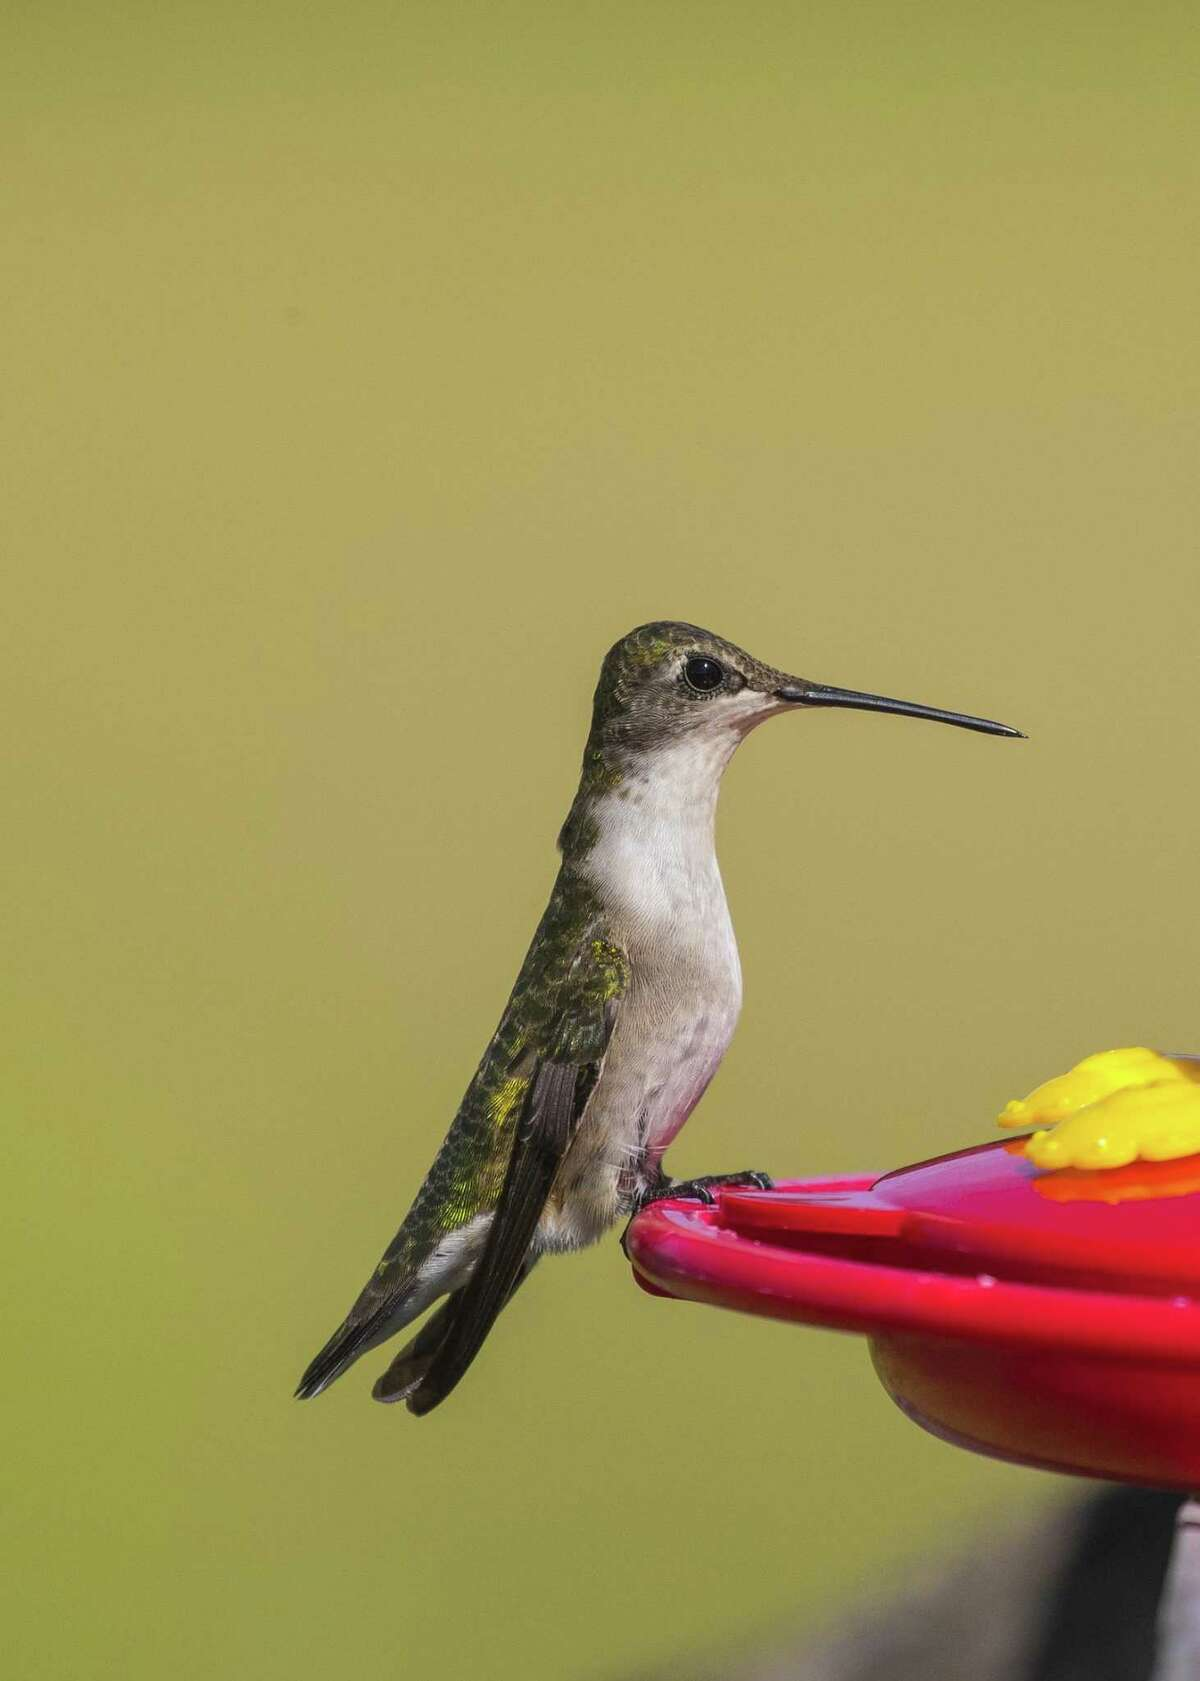 Ruby-throated hummingbirds are fattening-up at area sugar water feeders on their way to winter homes in Latin America. Photo Credit: Kathy Adams Clark Restricted use.